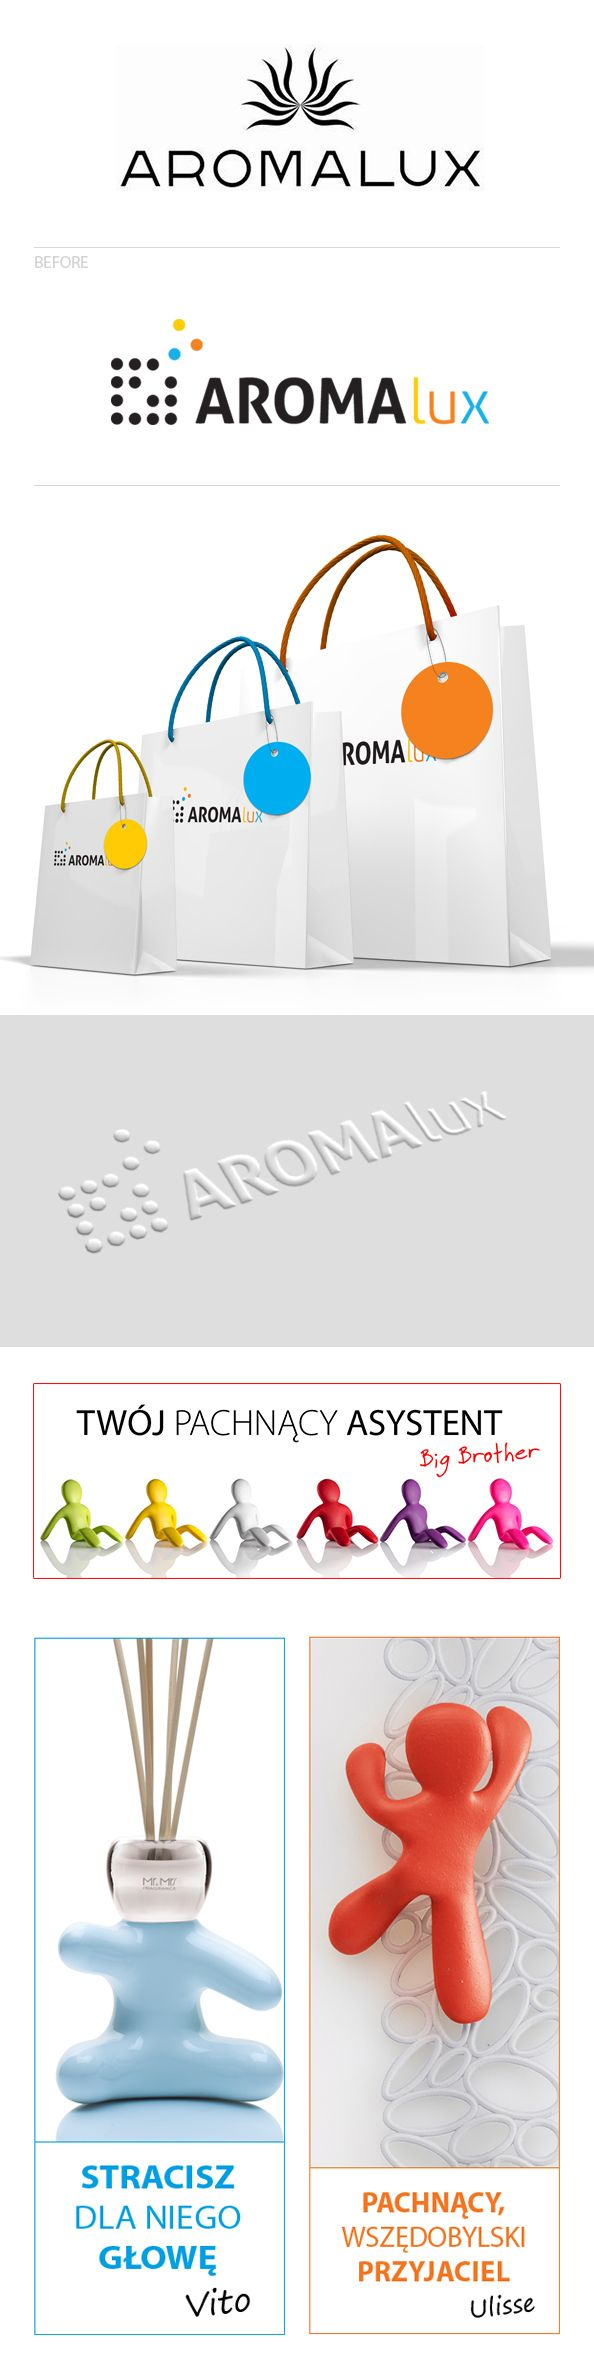 Aromalux by Ola Grzeganek, via Behance